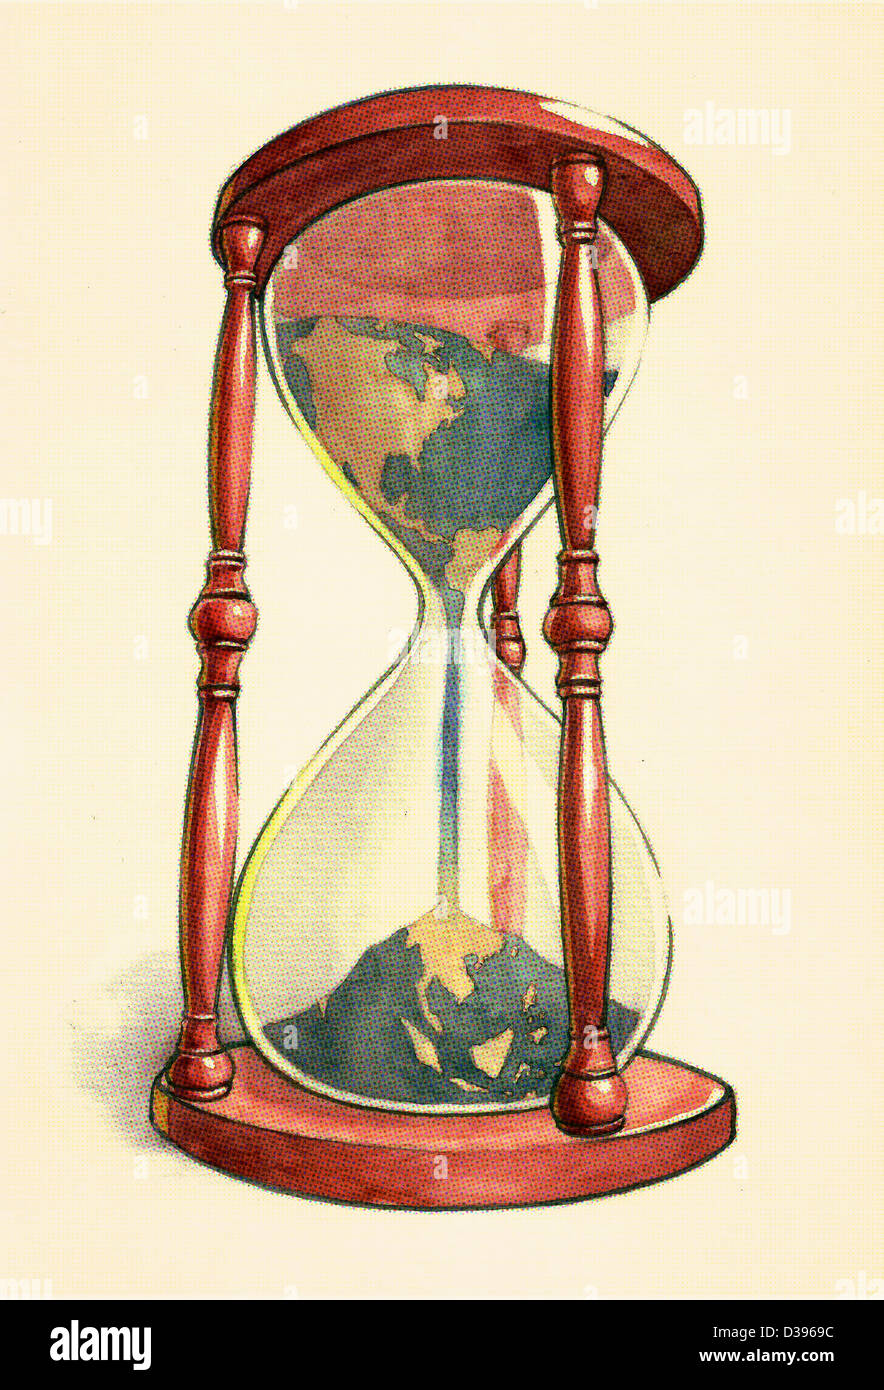 Conceptual illustration of globe in hourglass over colored background depicting environmental damage - Stock Image